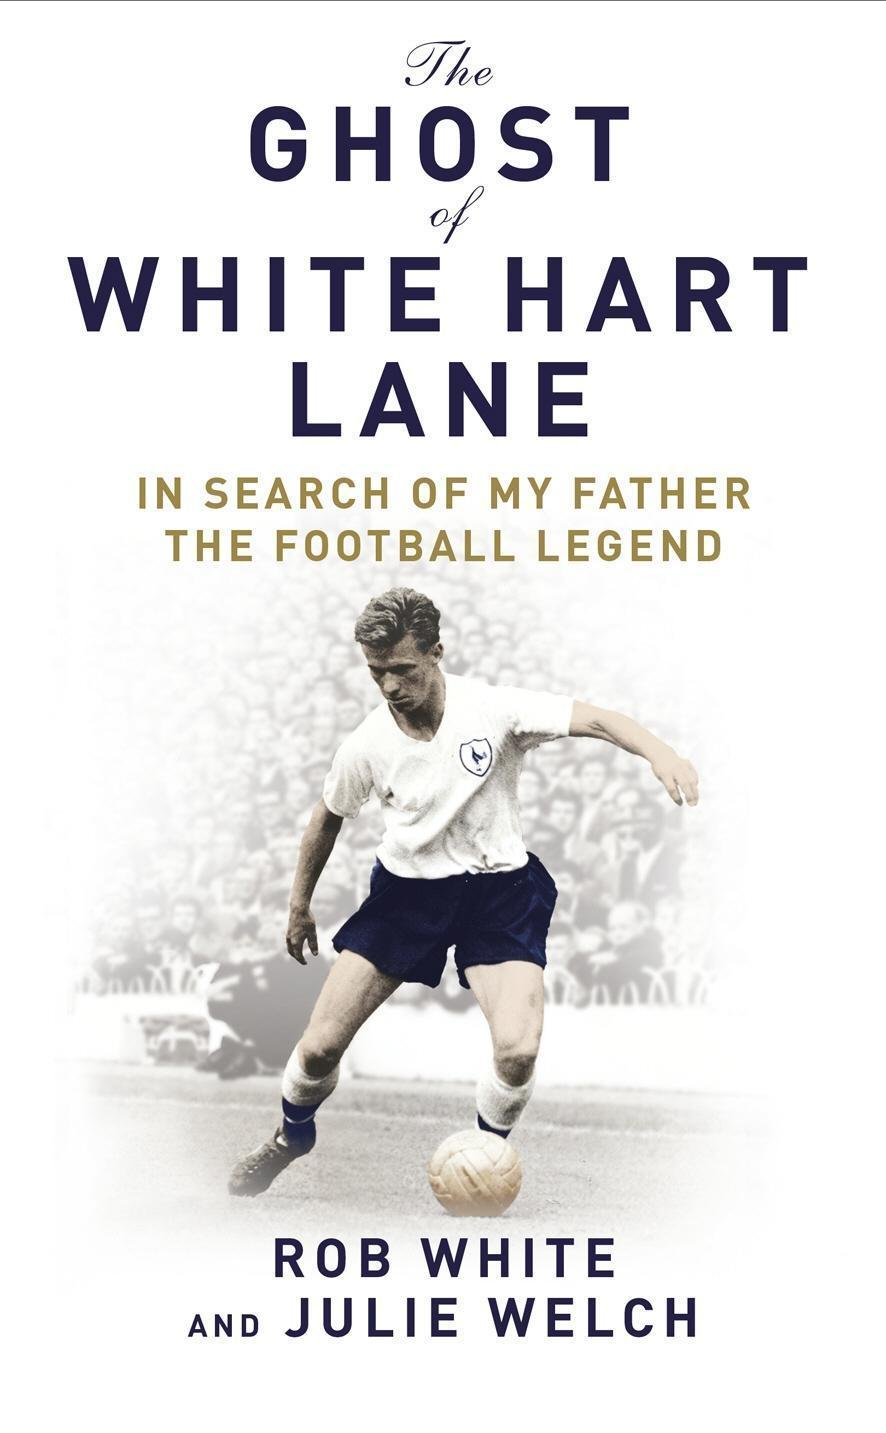 The Ghost of White Hart Lane